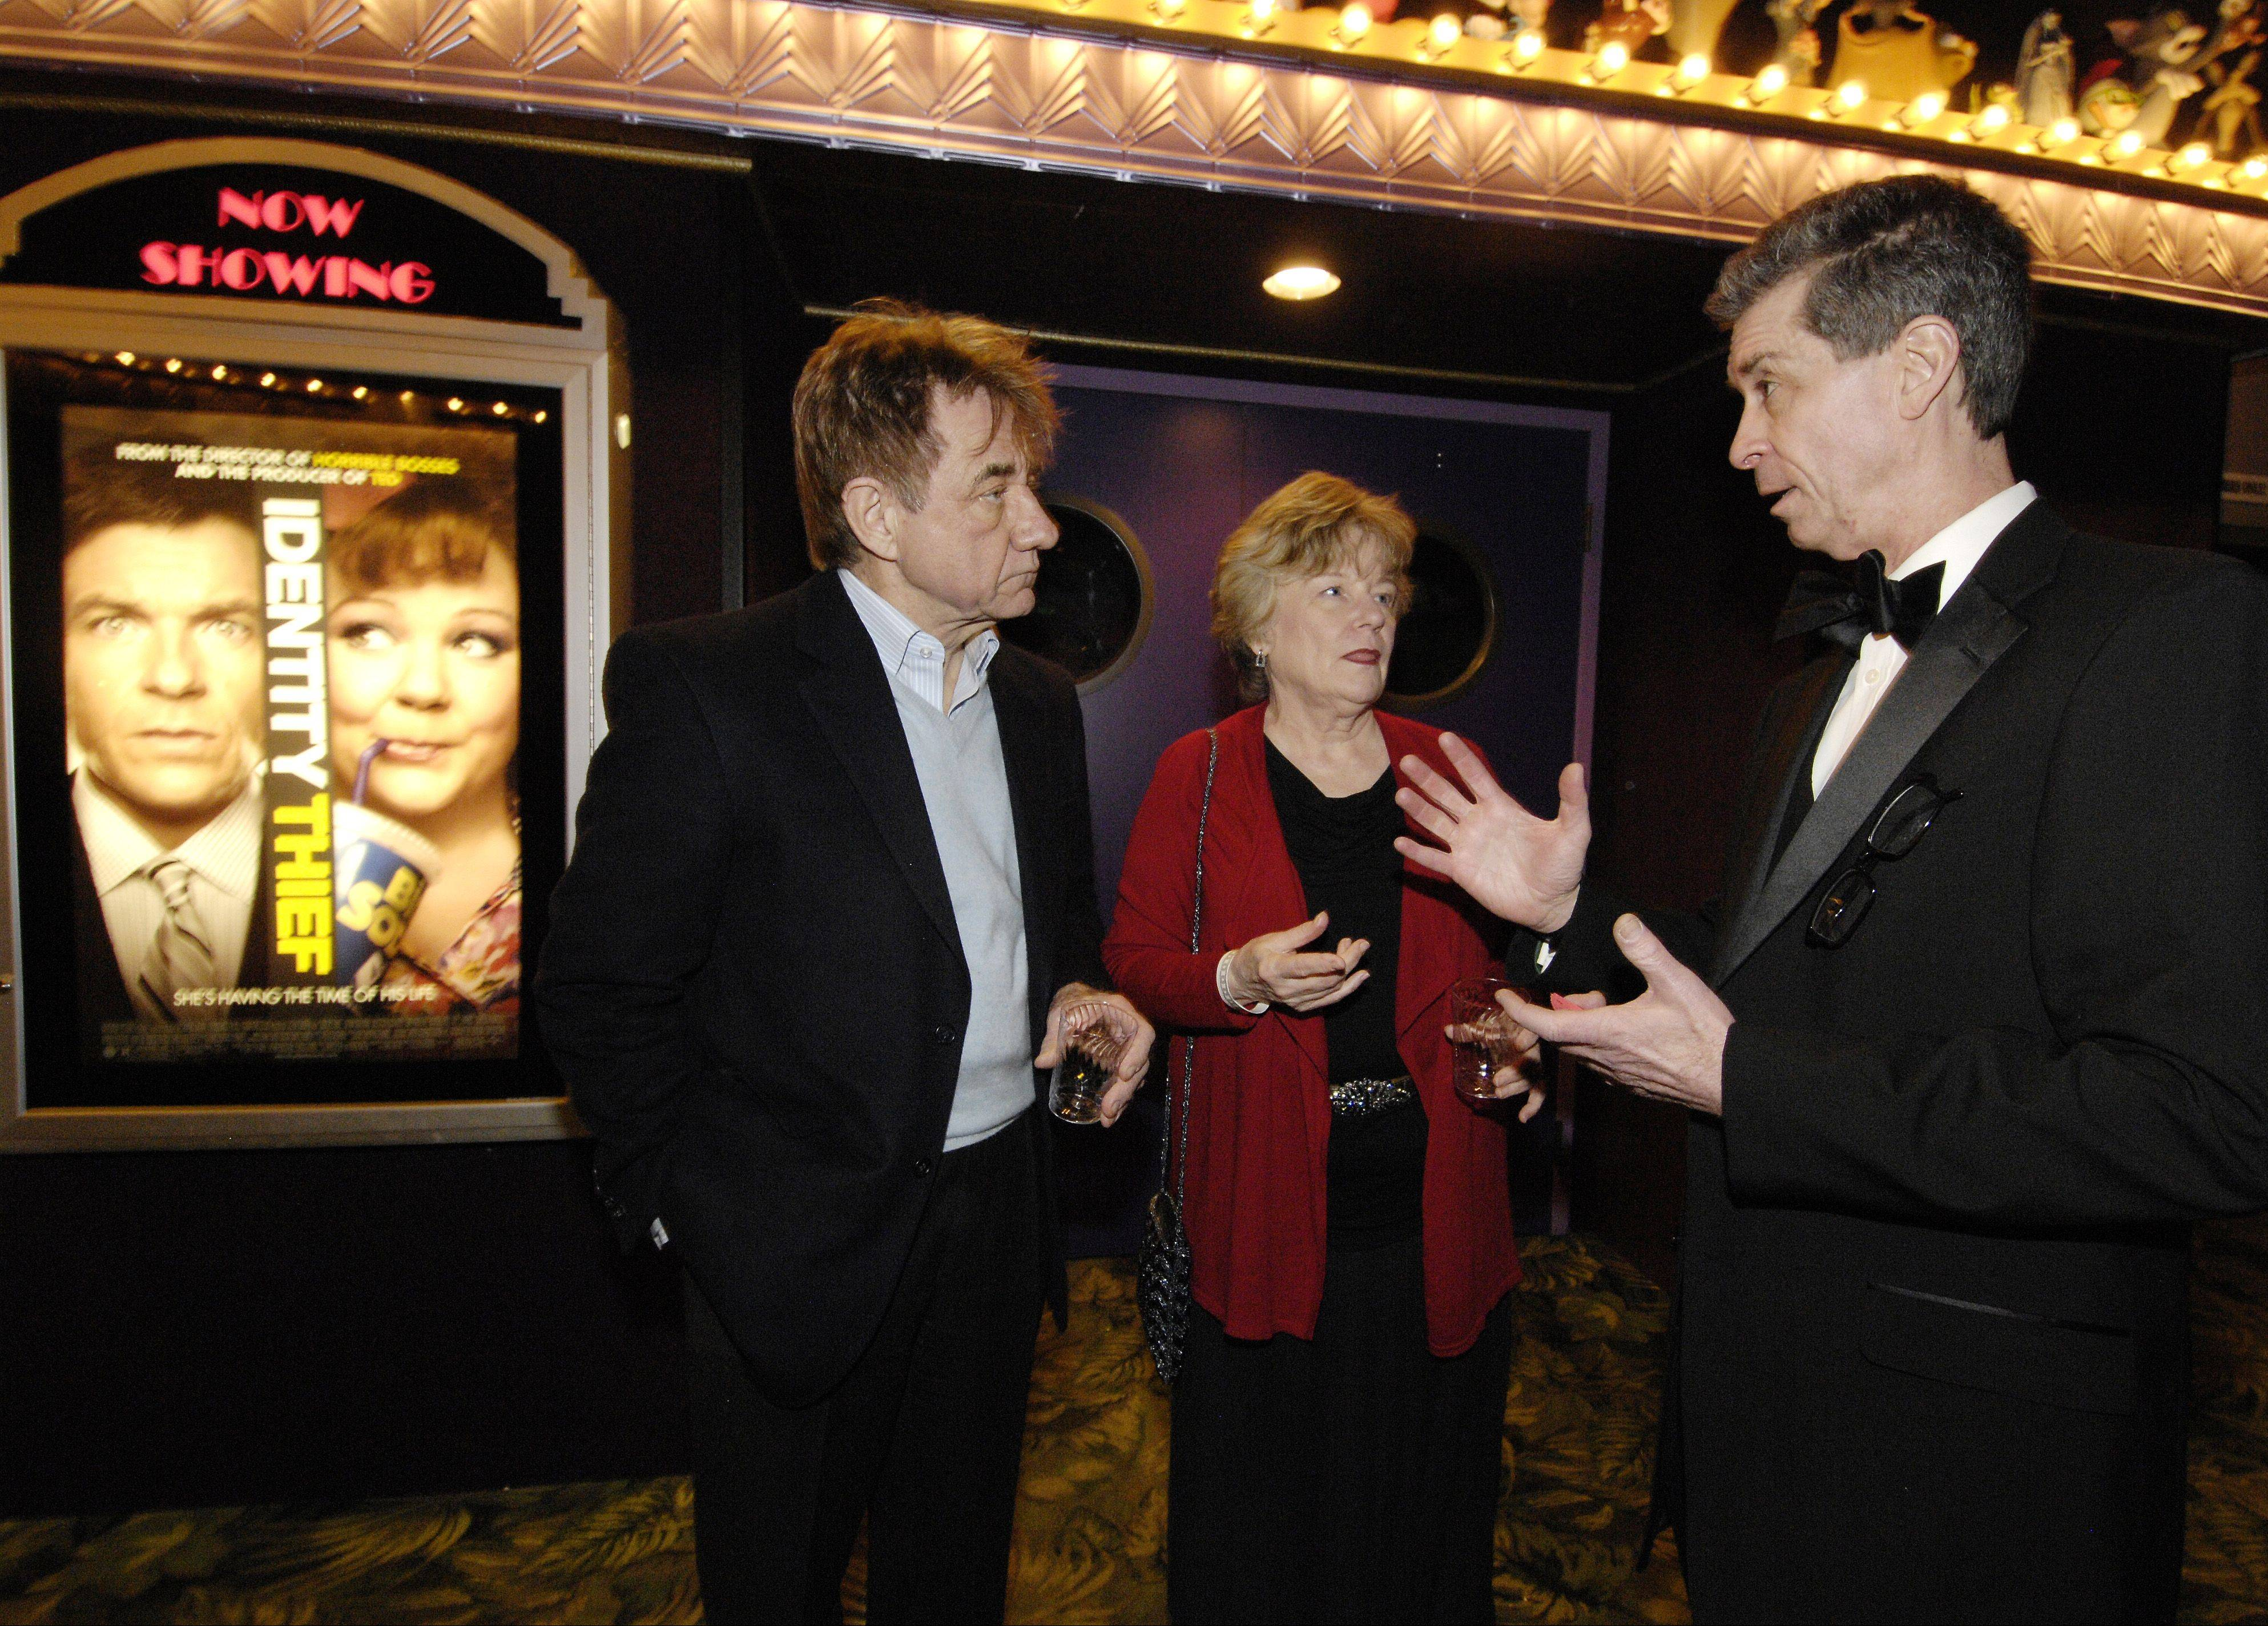 Daily Herald subscribers Bob and Patti Jostes of Arlington Heights talk with Daily Herald Film Critic Dann Gire during Sunday's Oscars event at the Hollywood Palms Cinema in Naperville.